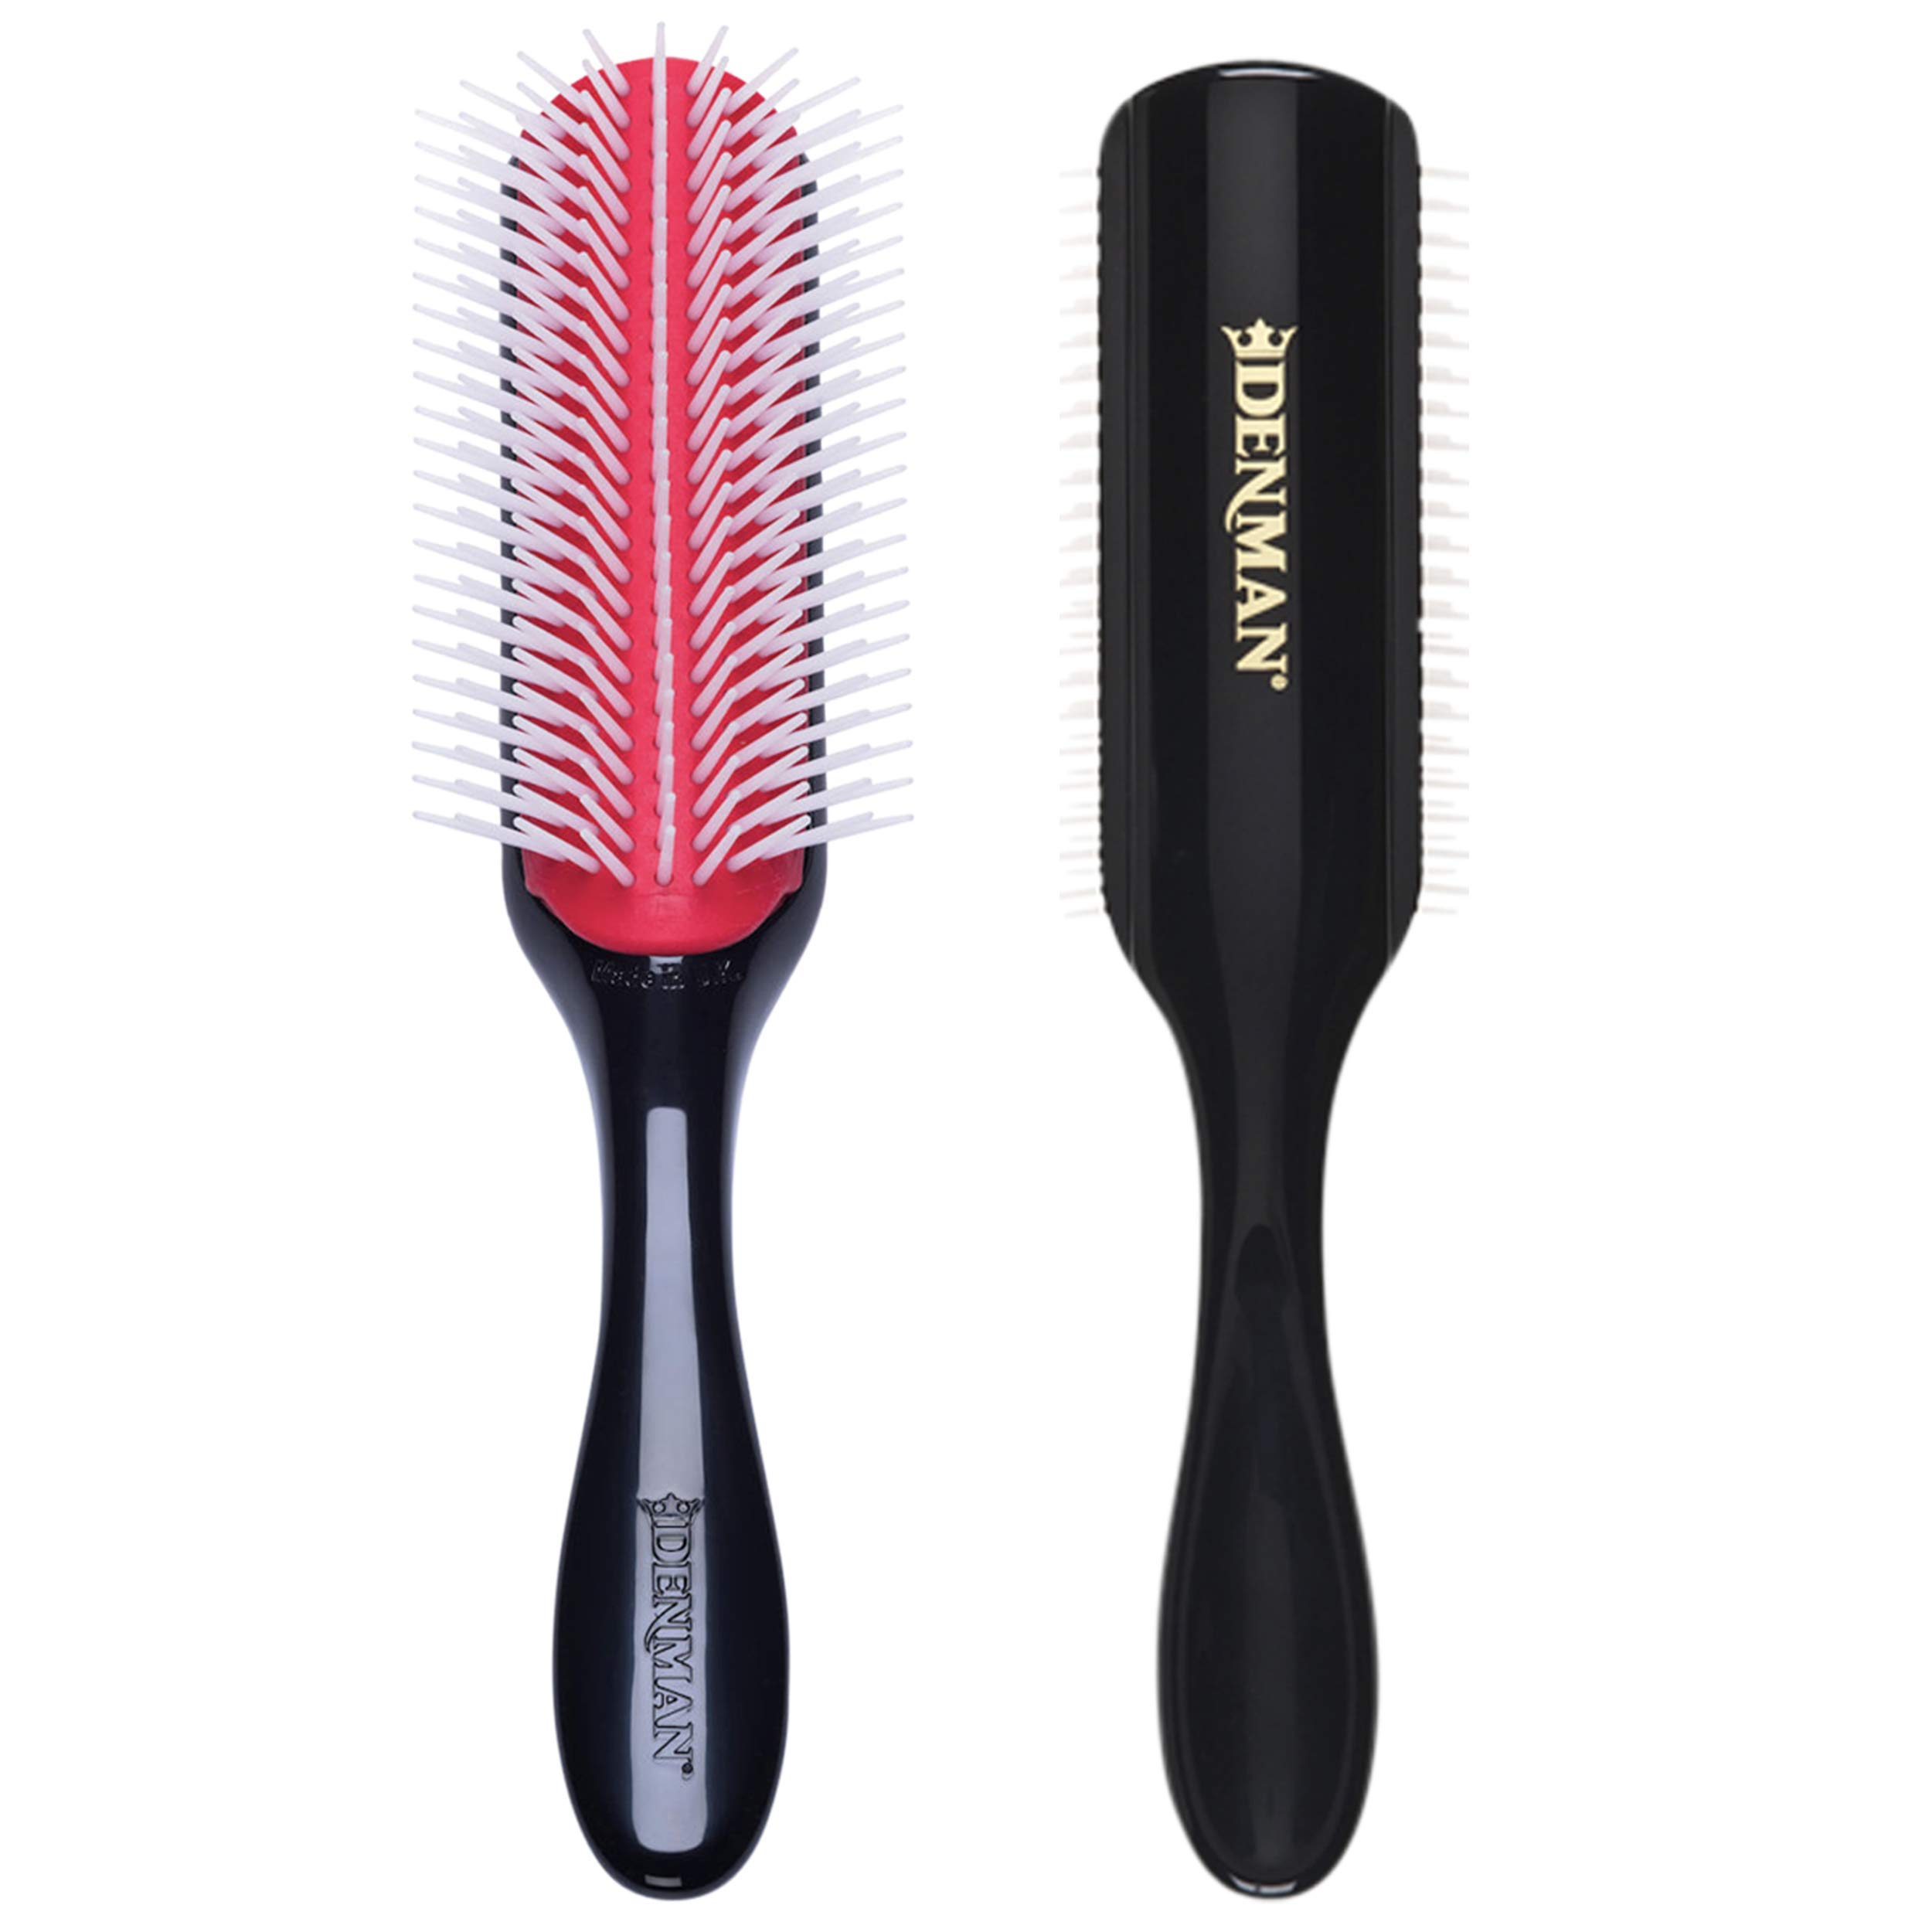 Denman D4 9-Row Styling Brush